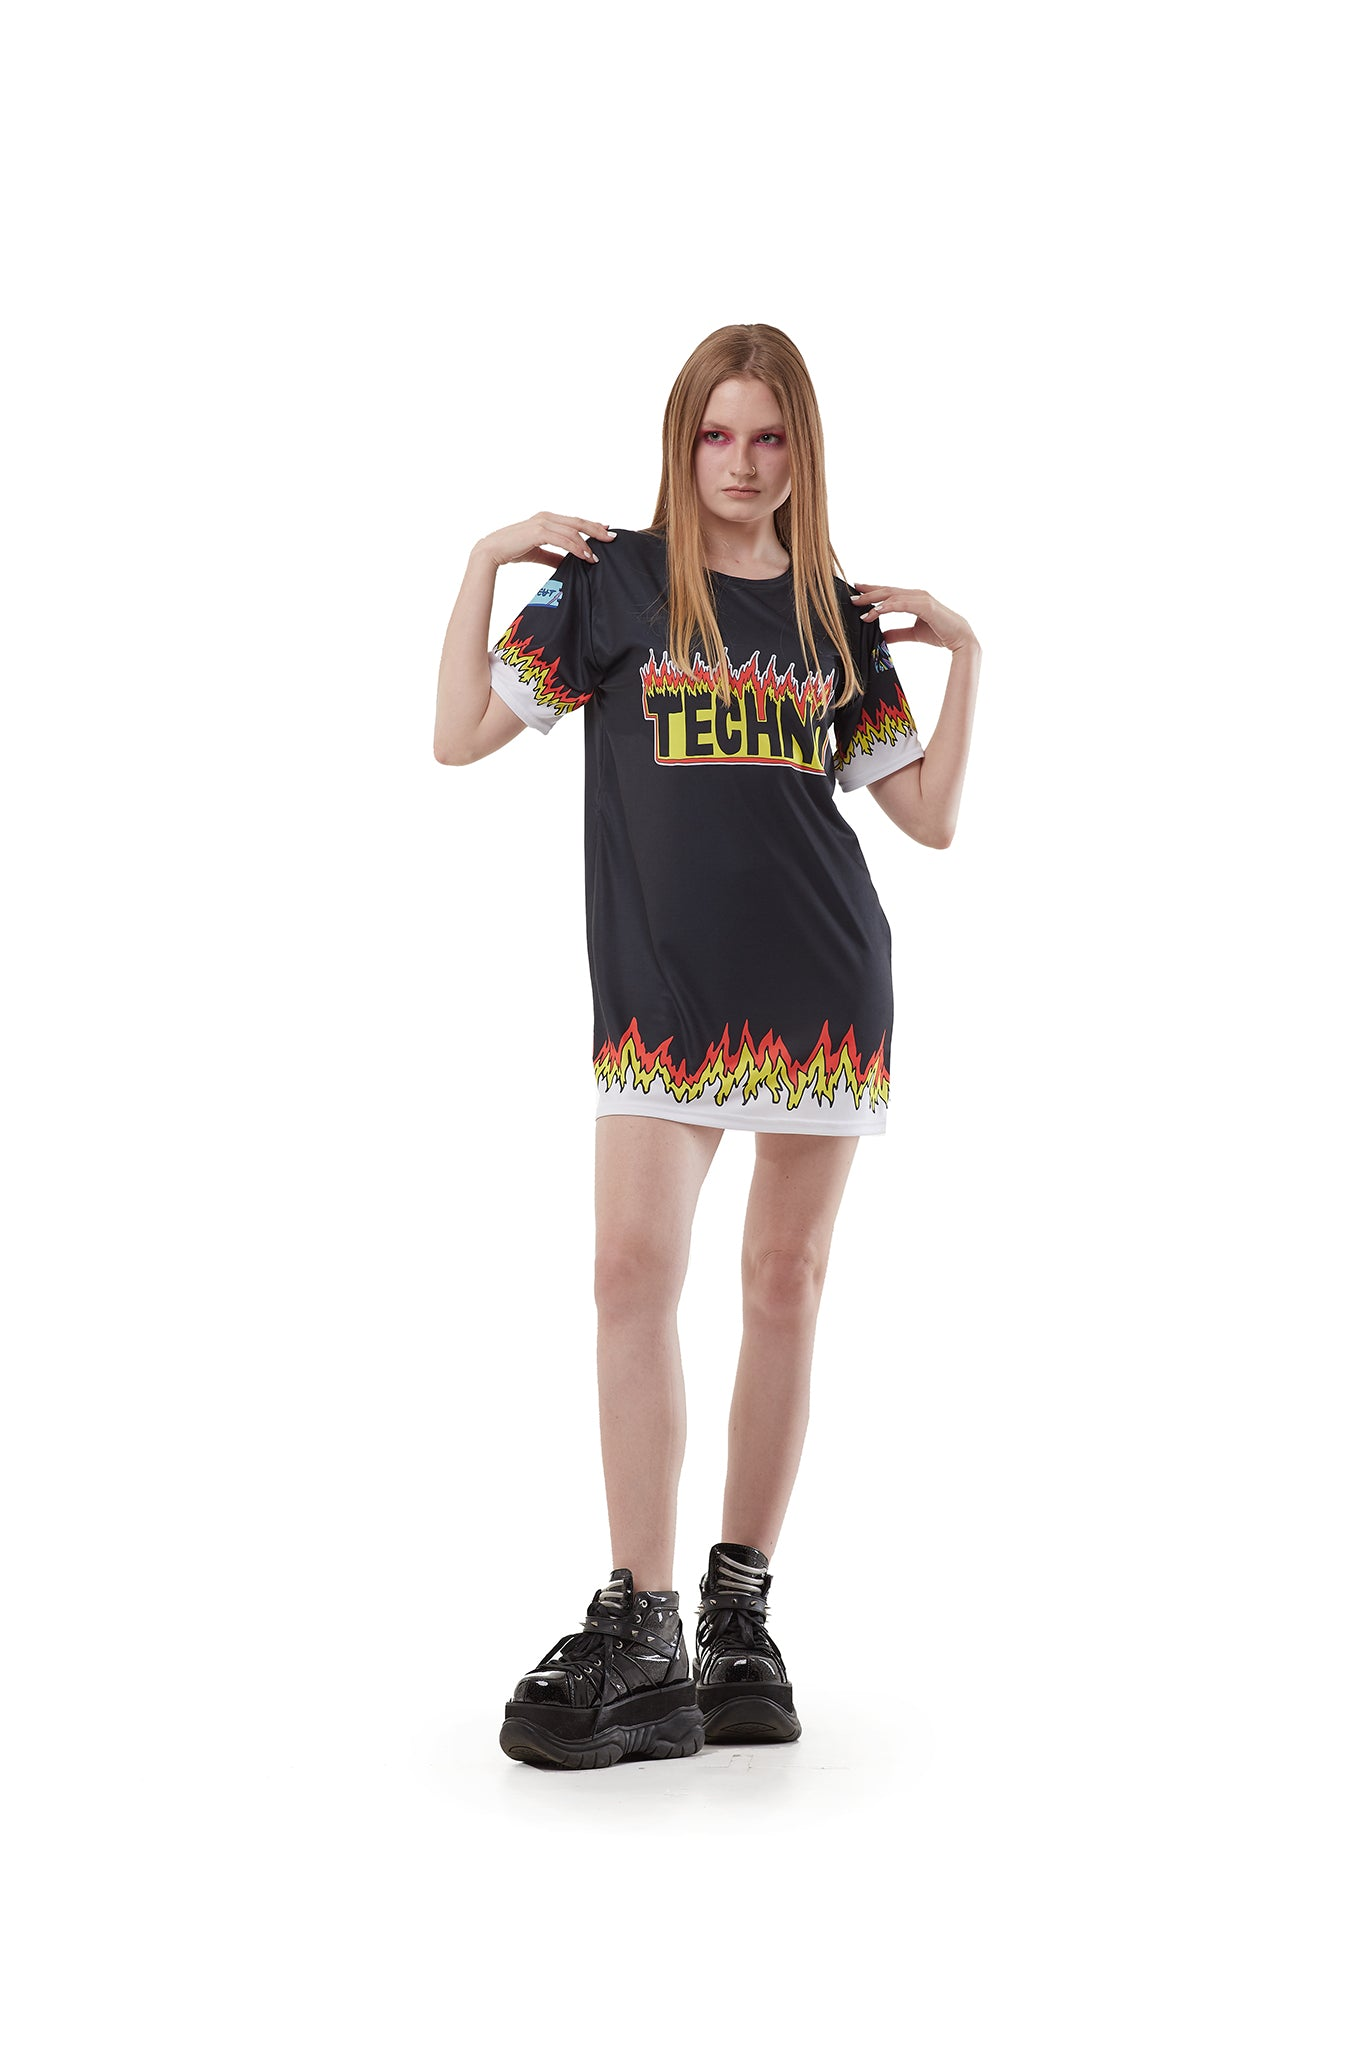 Fire Techno - oversized T-shirt